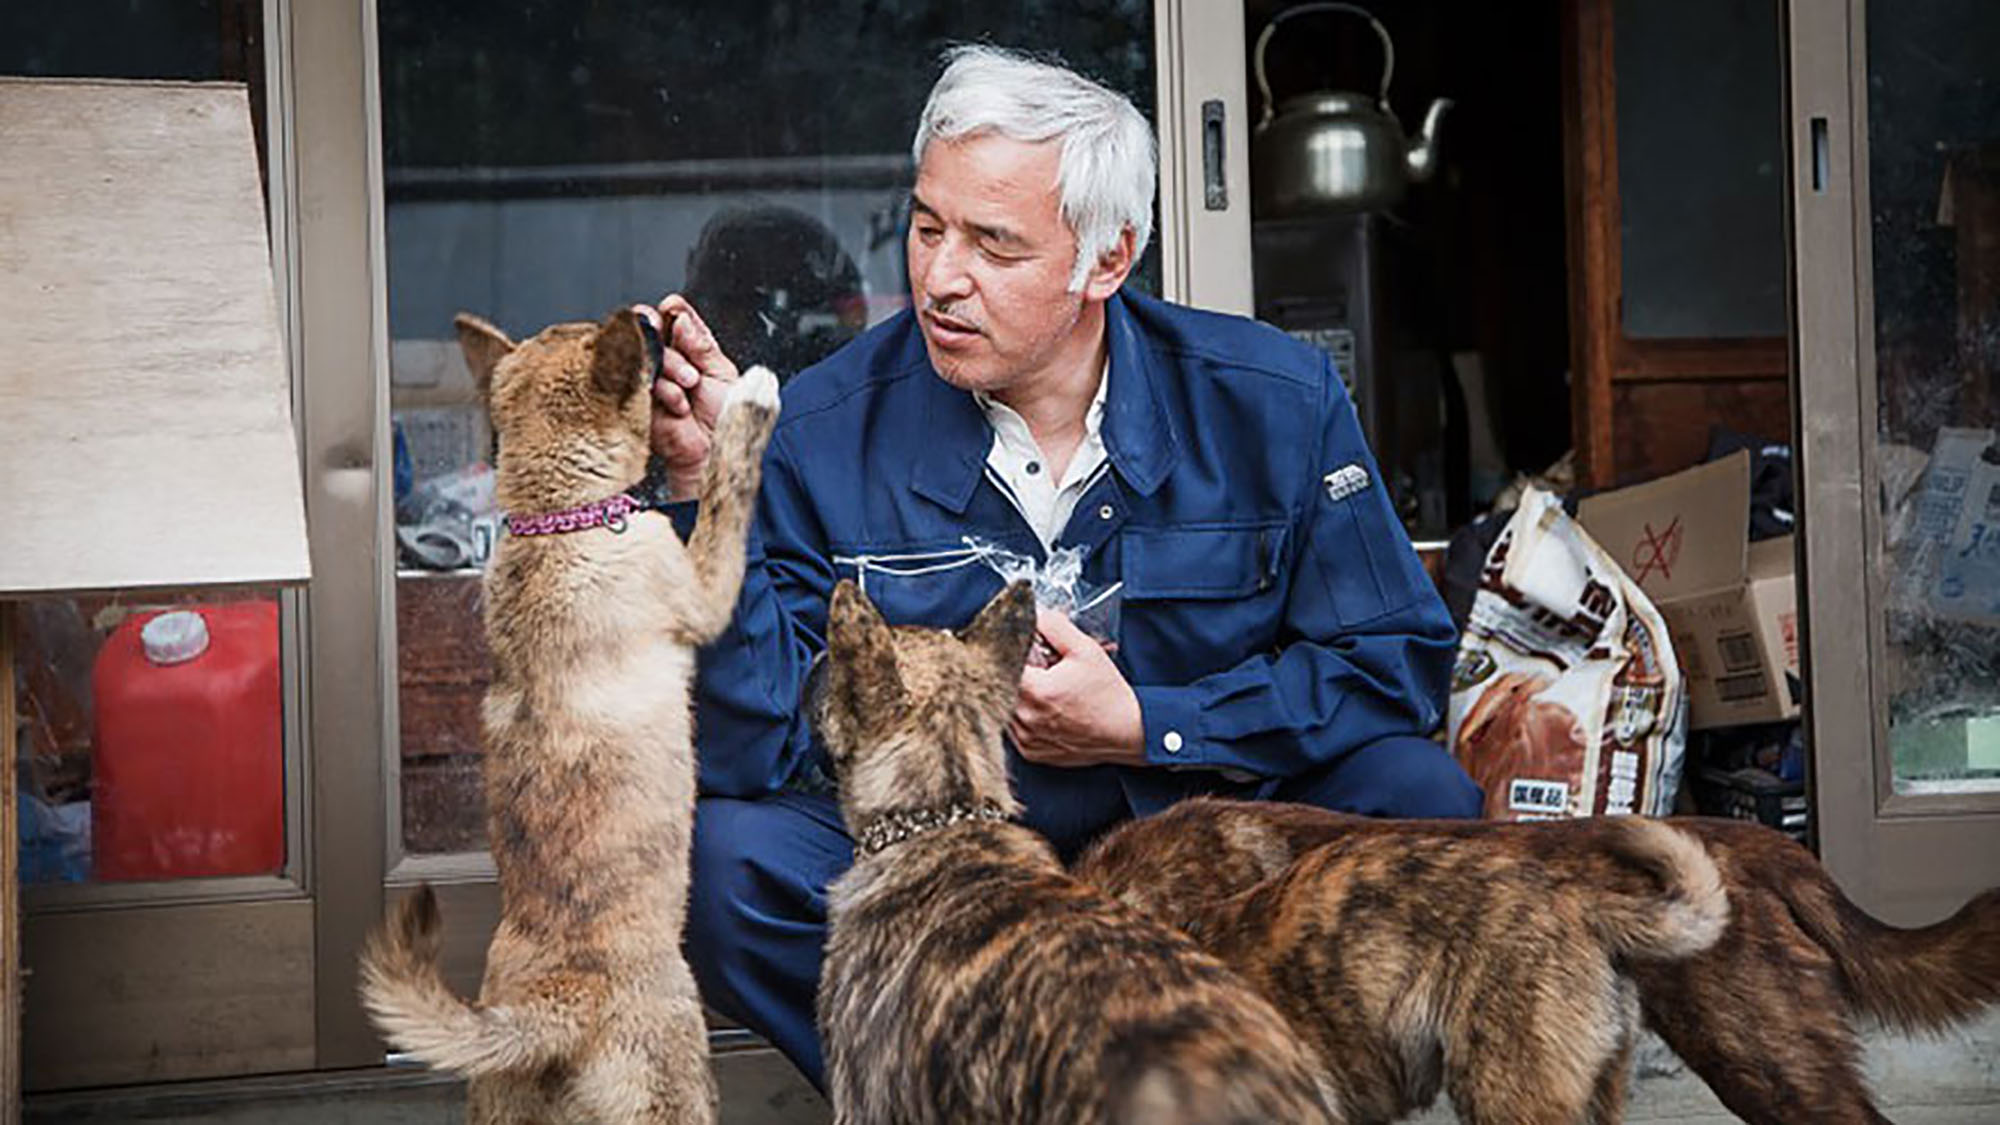 """Meet the """"radioactive"""" man who returned to Fukushima to feed the animals that were left behind"""